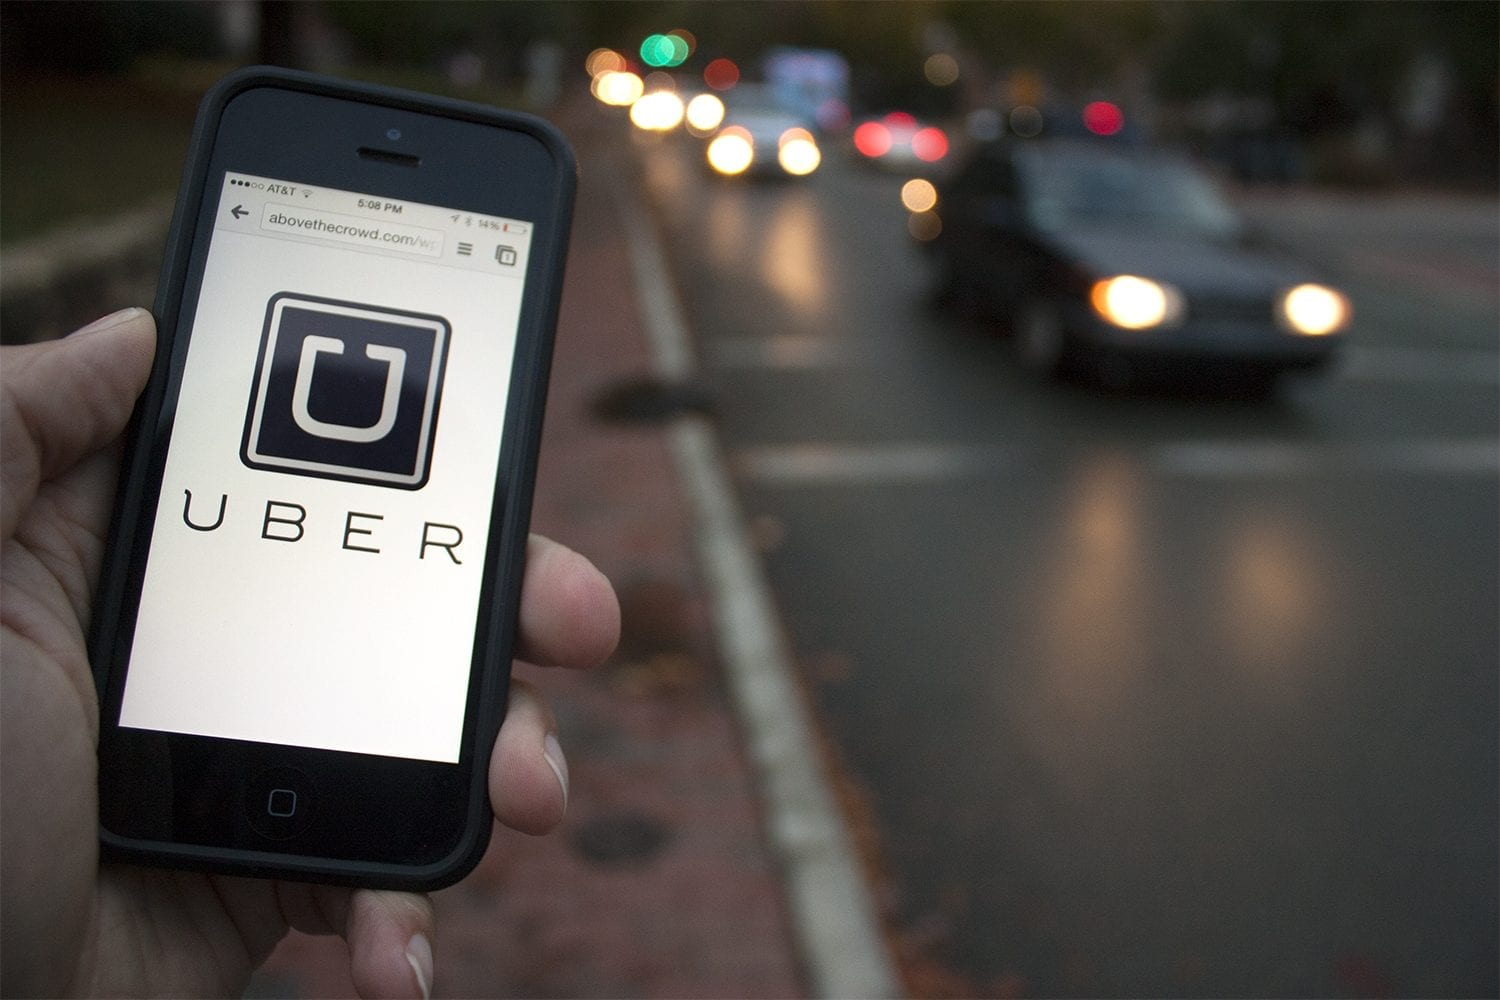 uber services